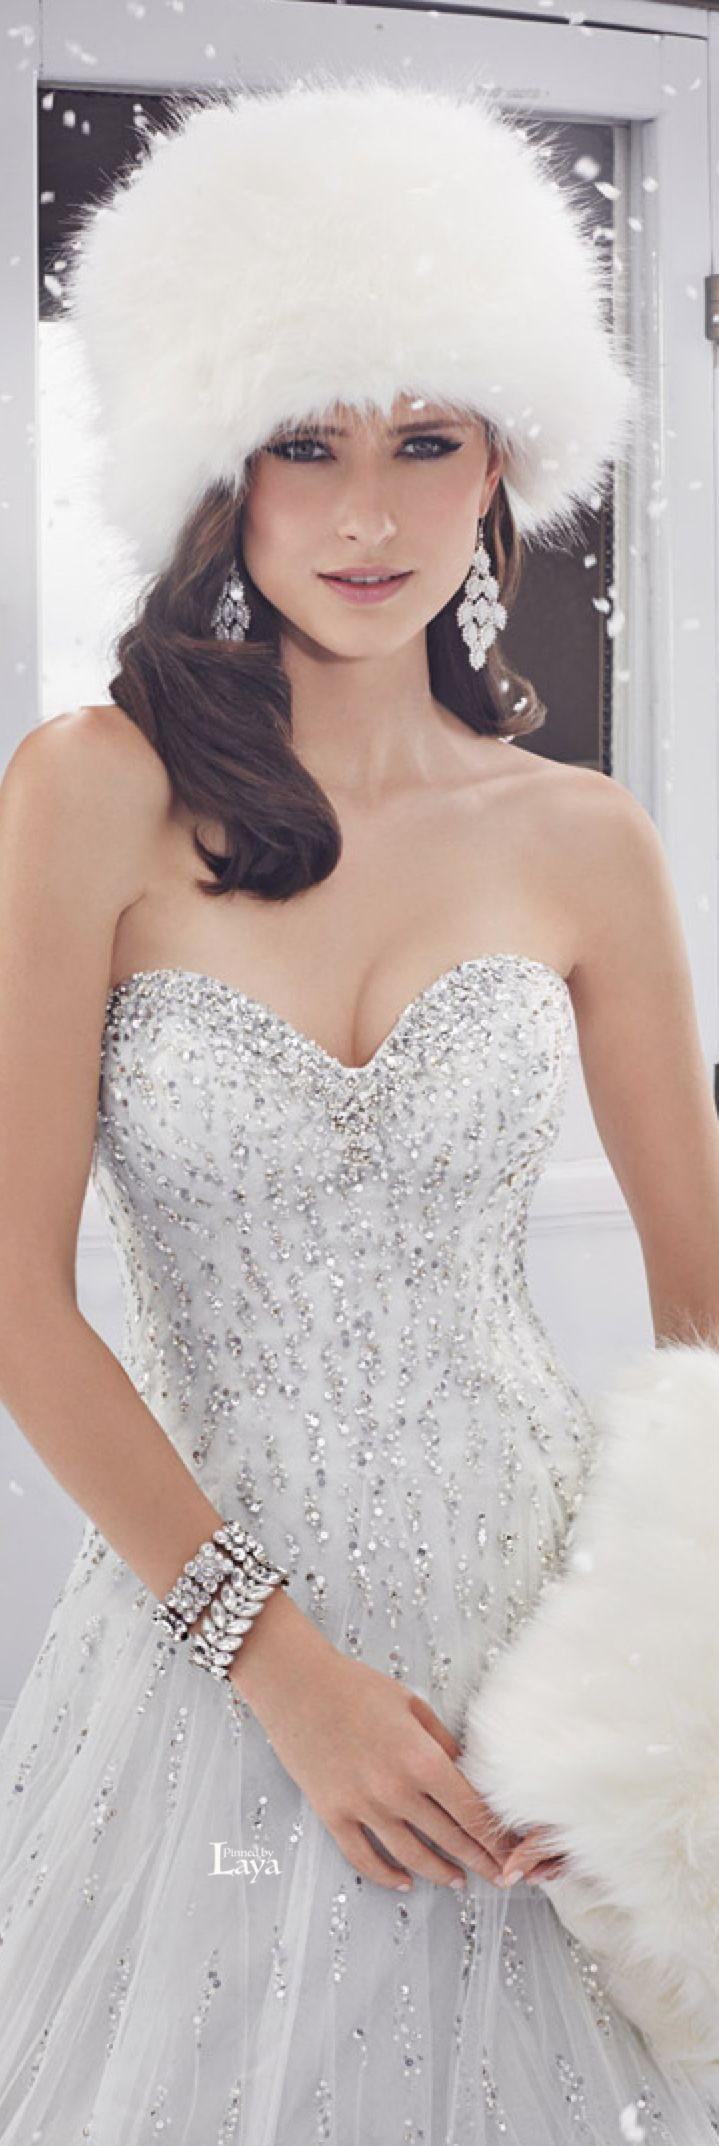 1129 best 2015 Wedding Dresses & Trends images on Pinterest ...